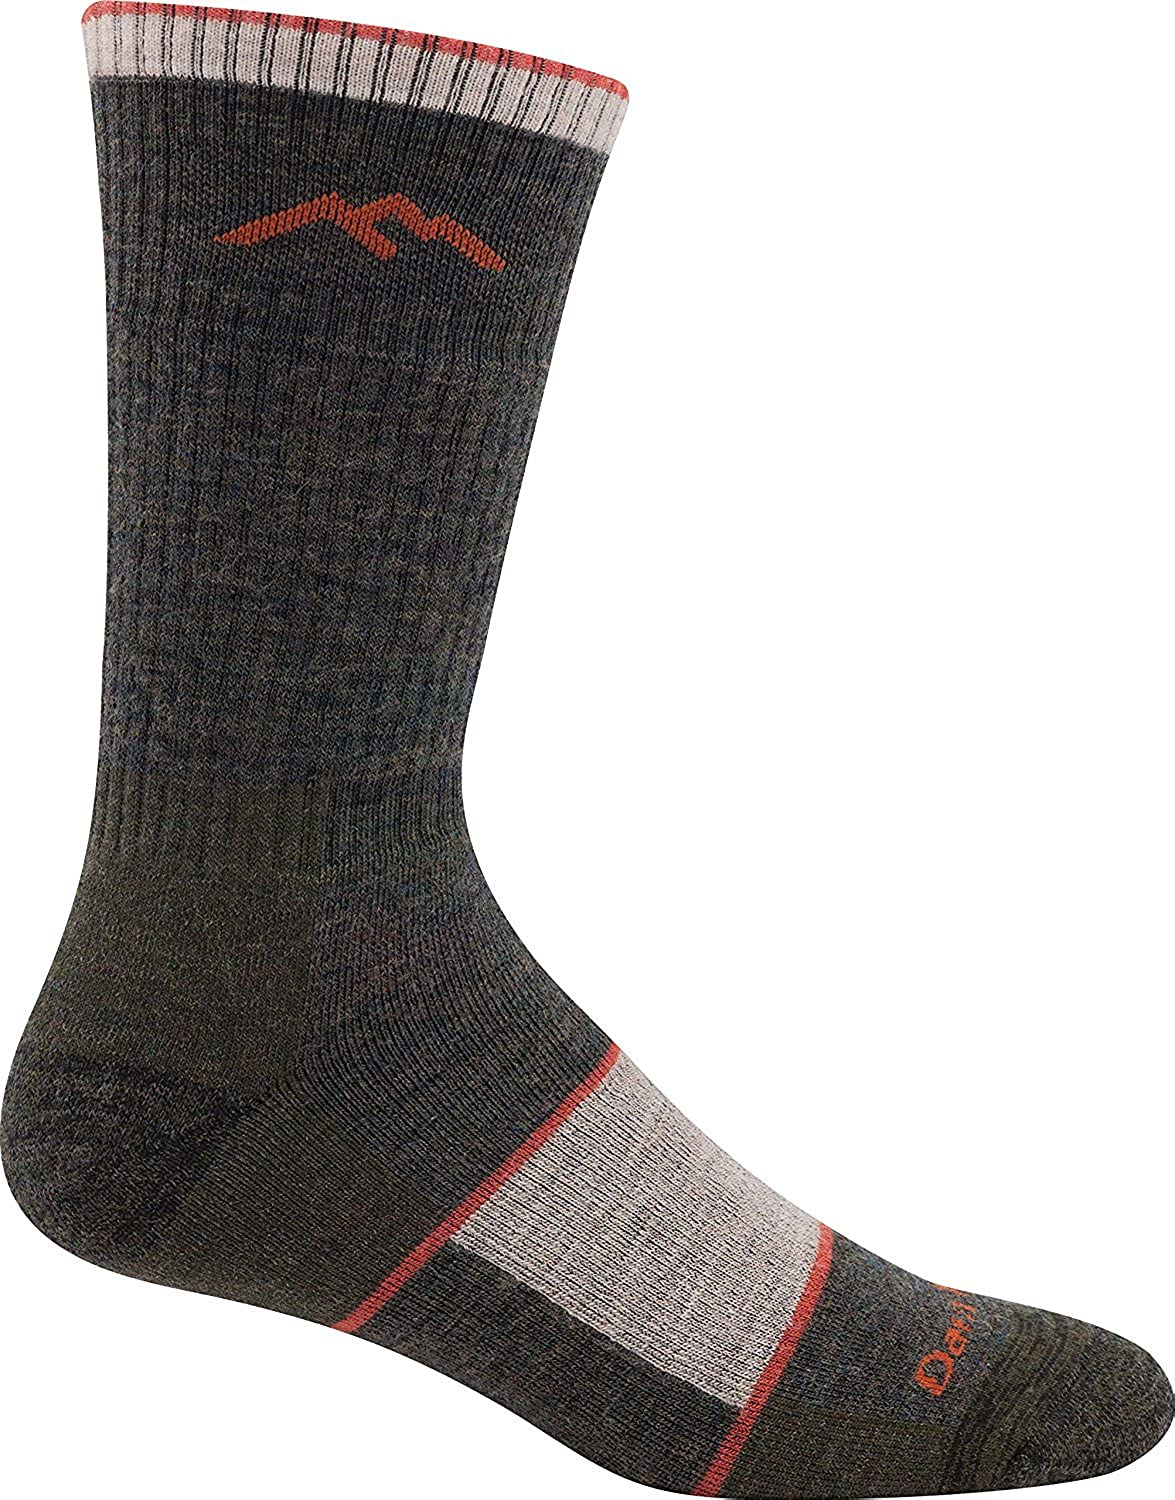 Darn Tough Men's Wool Mountaineering Extra Cushion Socks, Olive Medium, 6 Pack